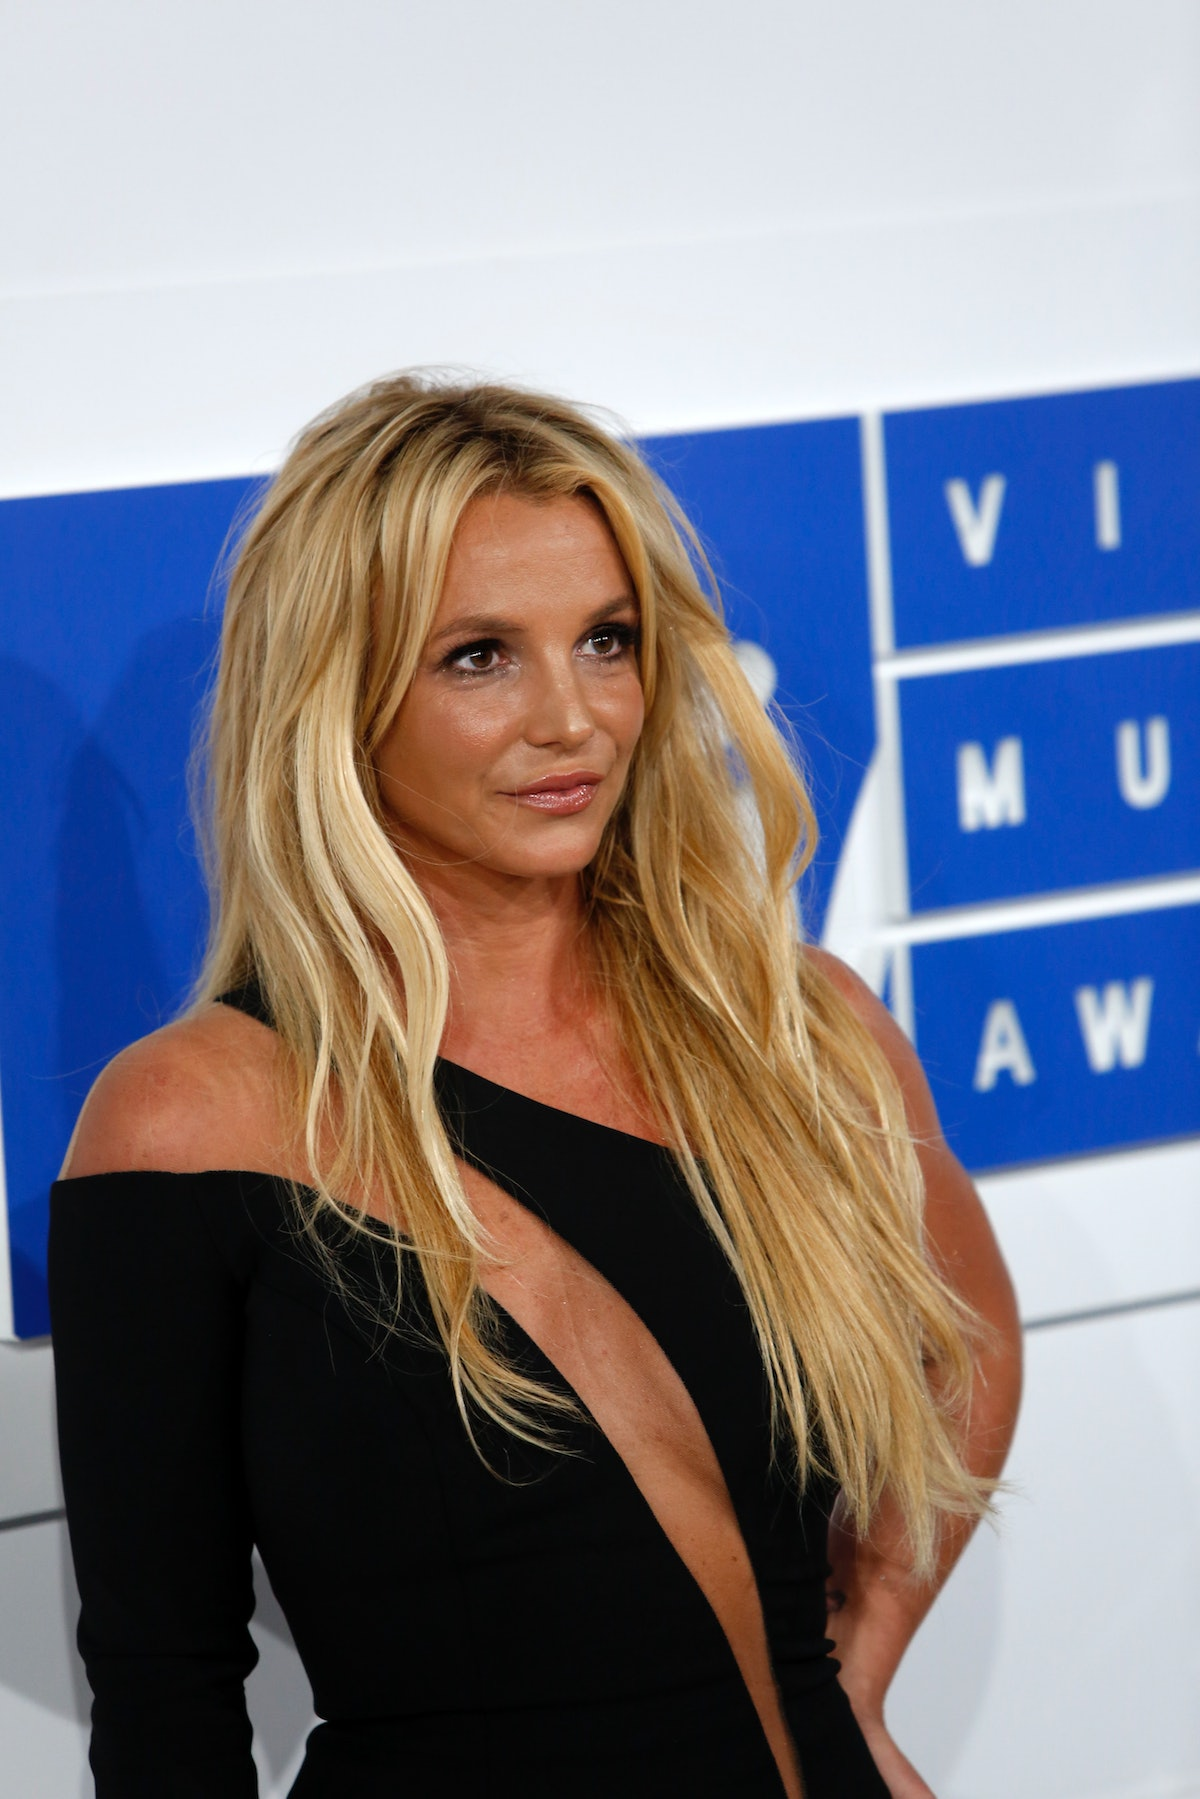 Britney Spears at the 2016 MTV Video Music Awards.